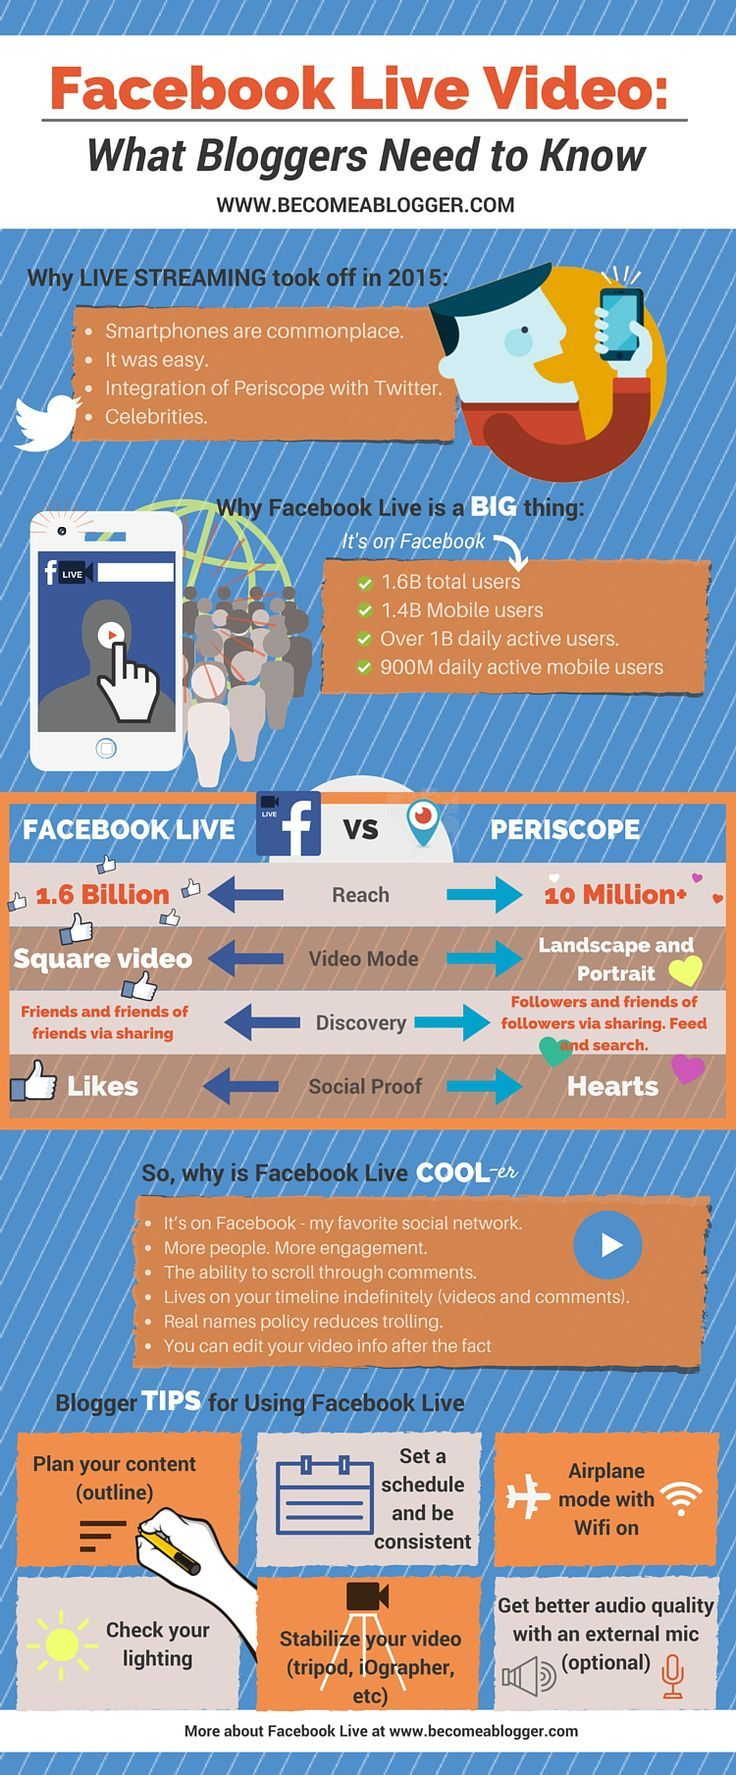 Facebook Live Video: What Bloggers Need to Know. #infographic